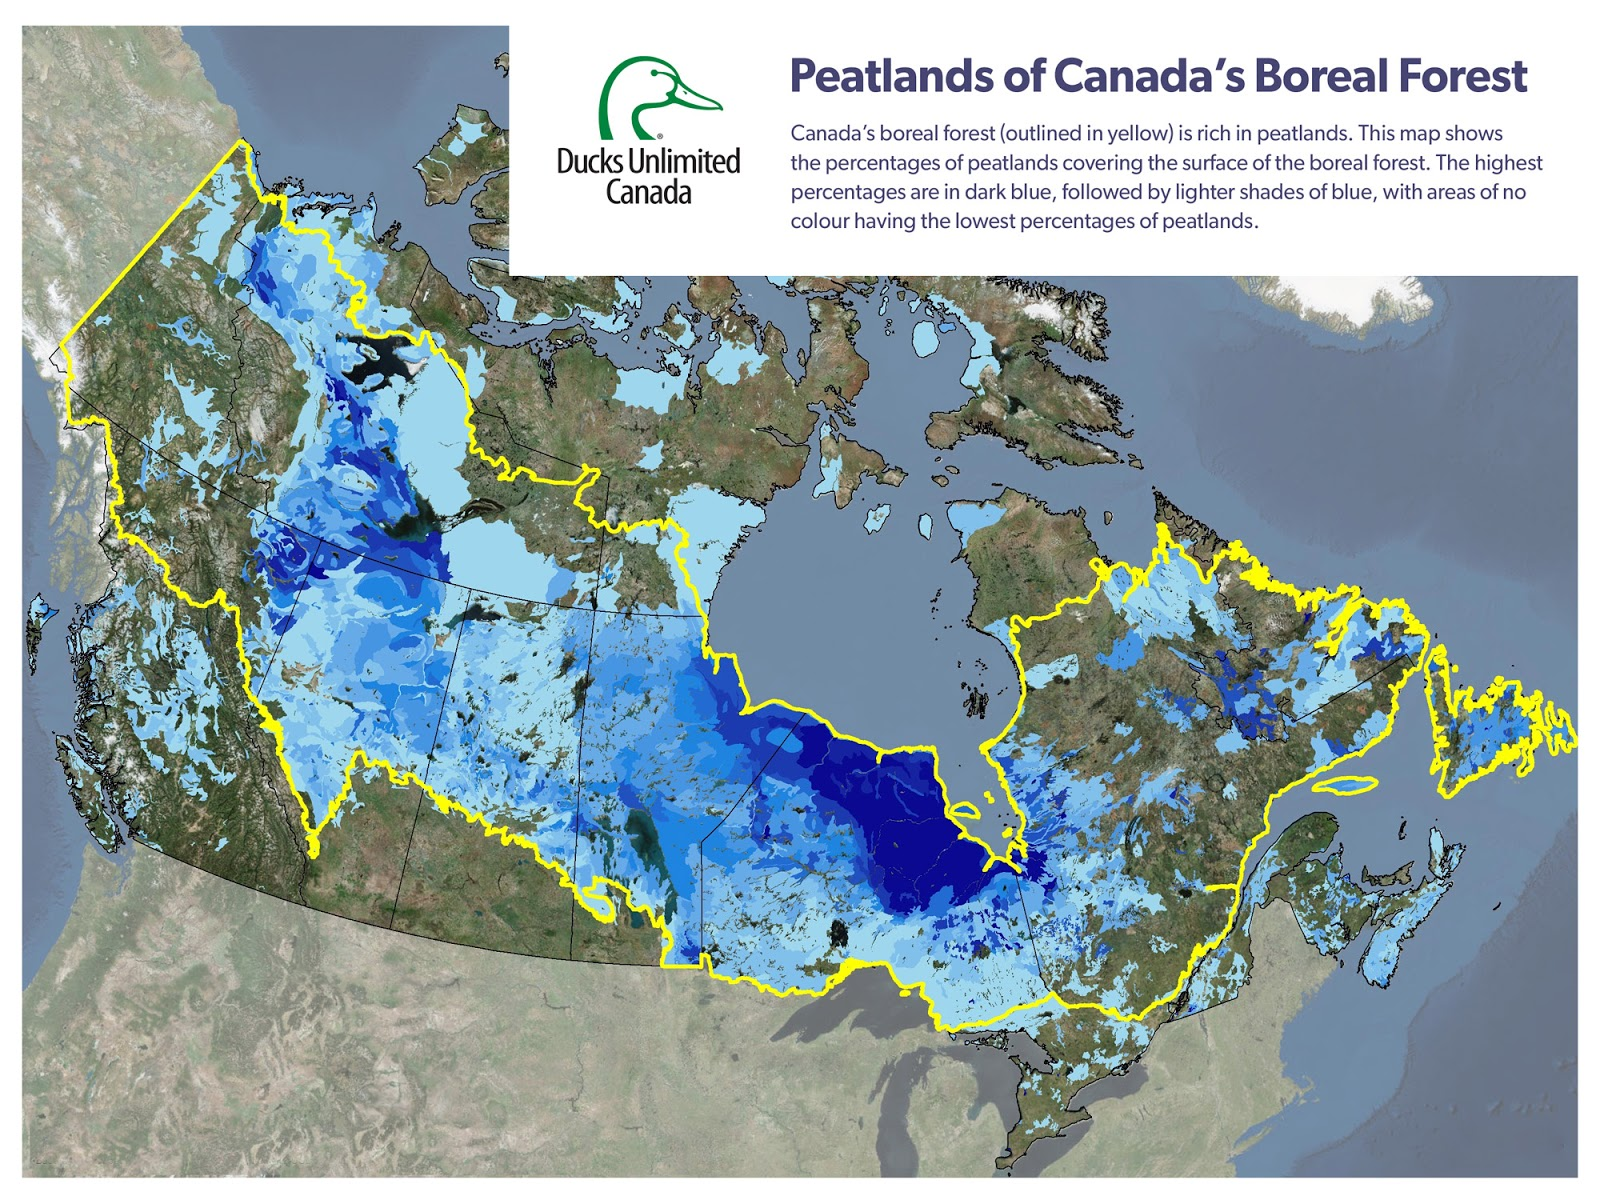 Carbon Storing Peatlands in Canada's Boreal Forest